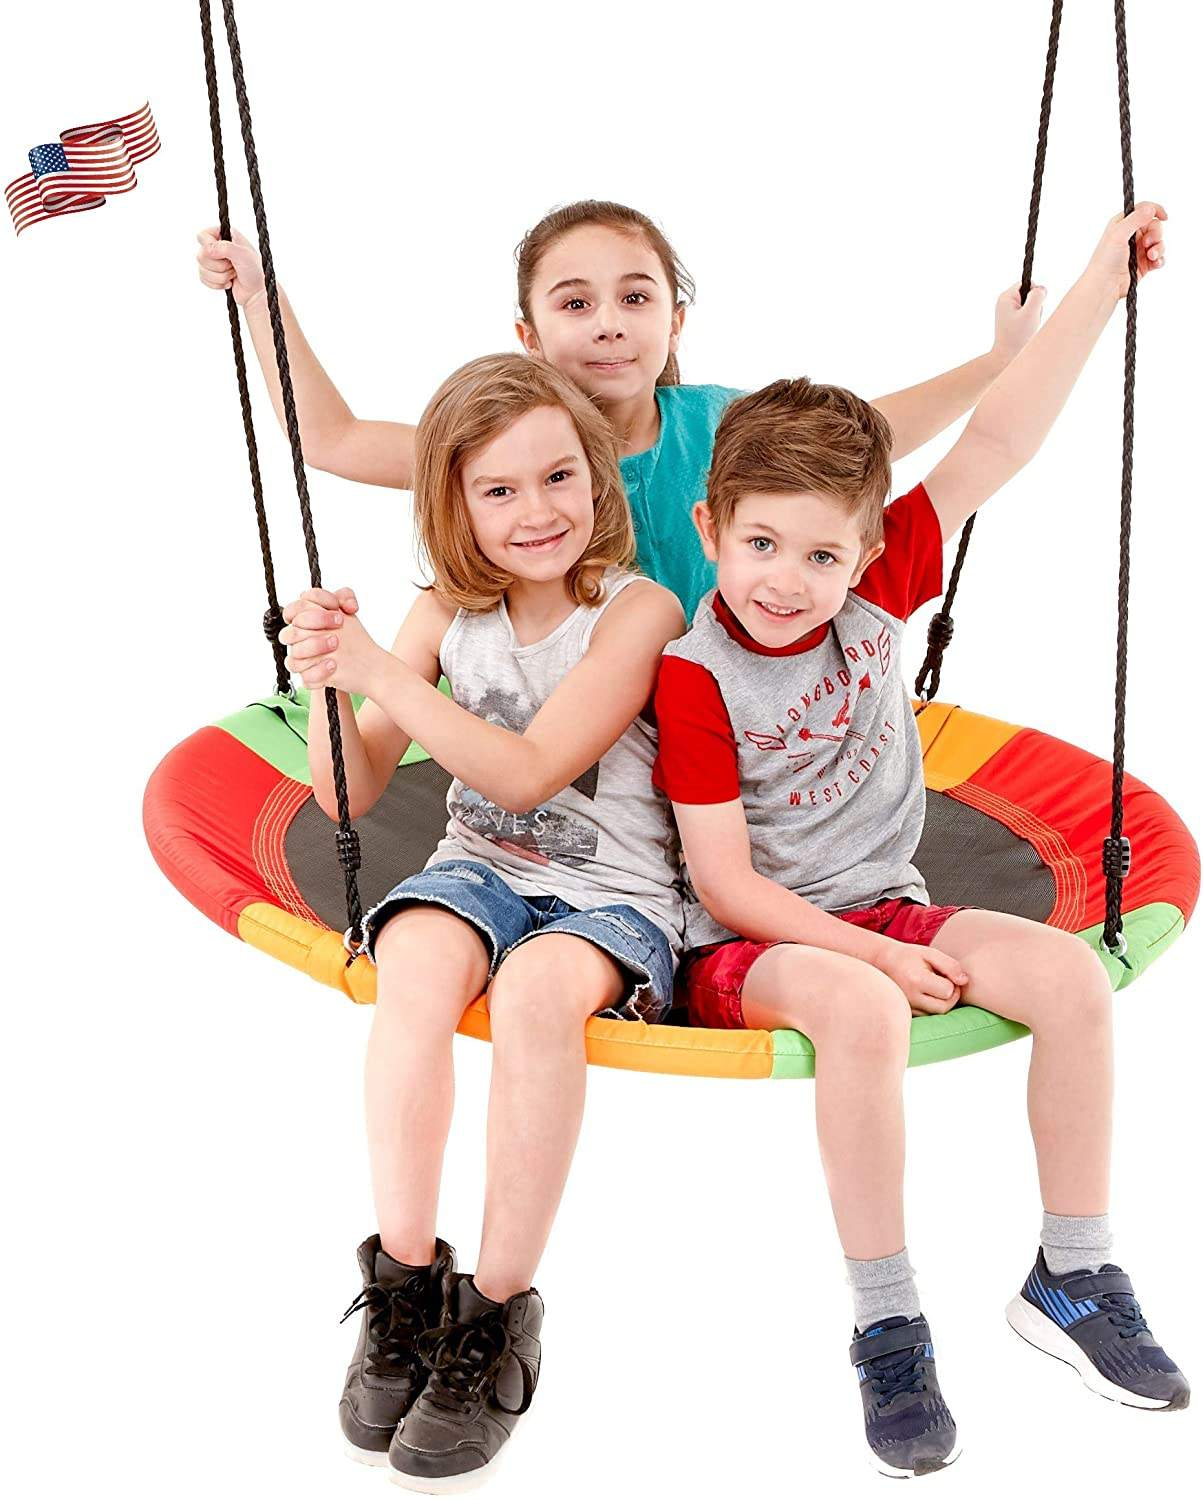 Children's outdoor circular mat flying saucer swing and large circular saucer swing set